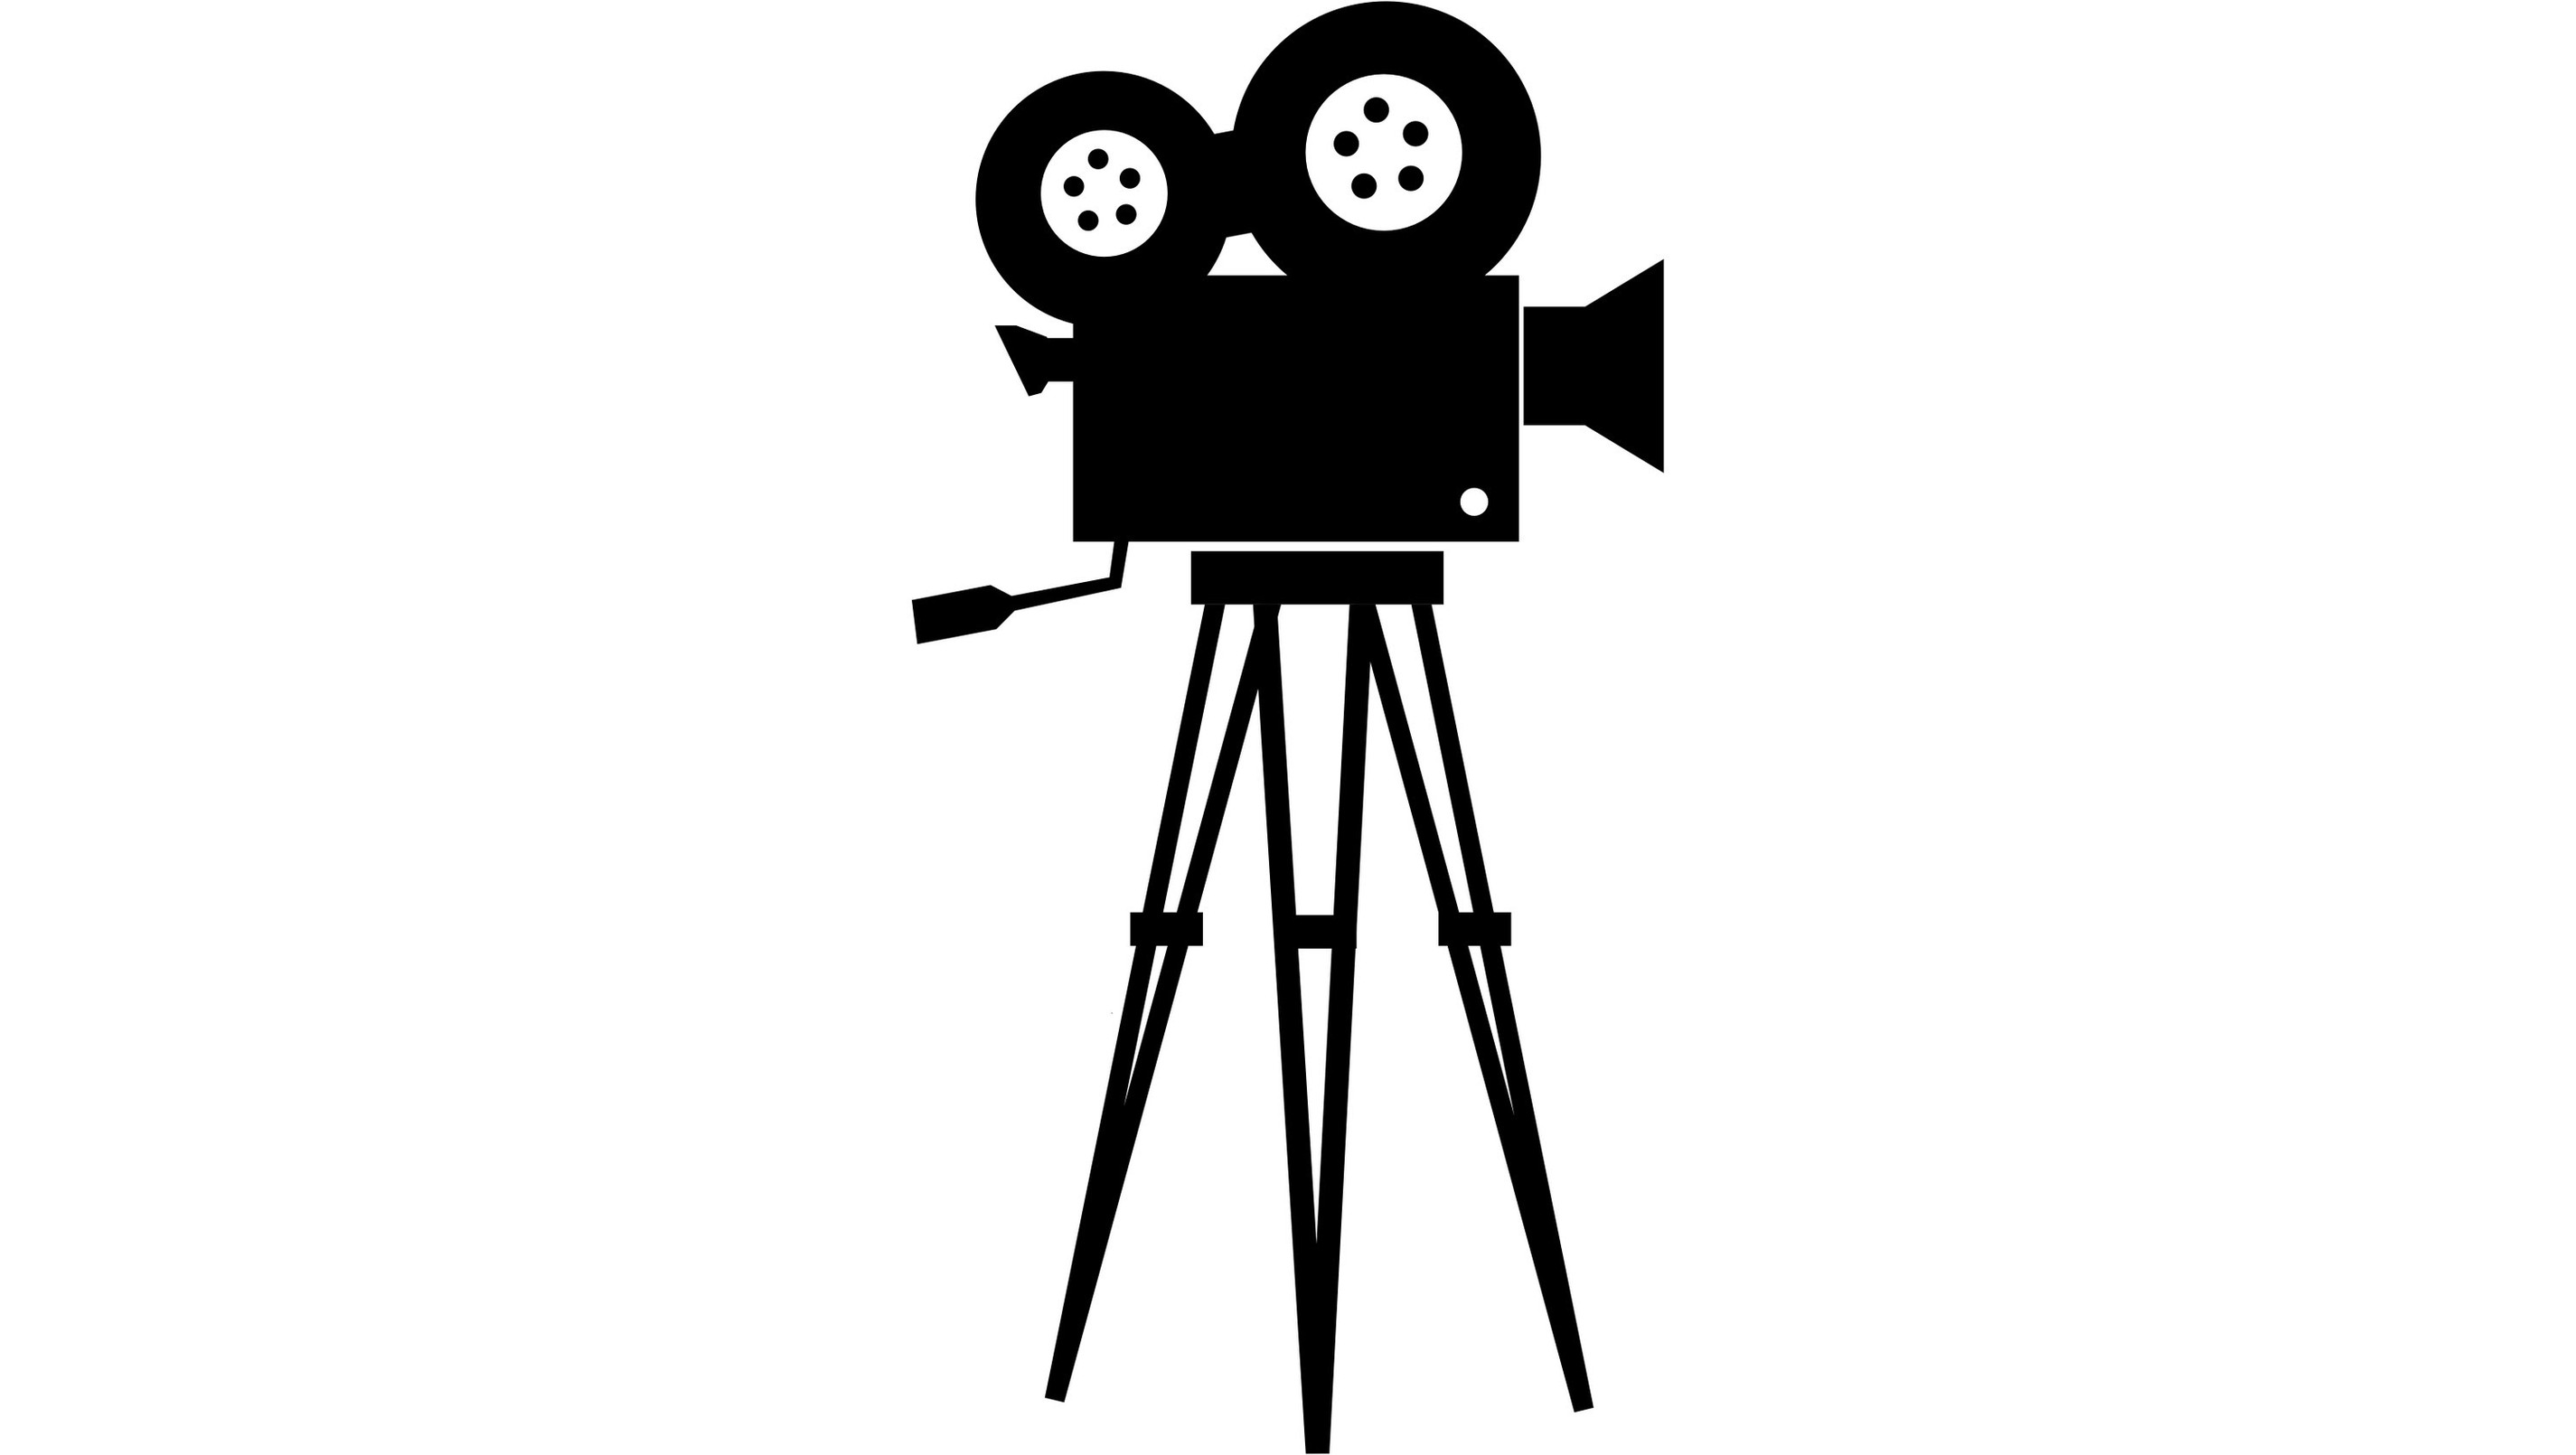 Image for movie clip. Camera clipart old time